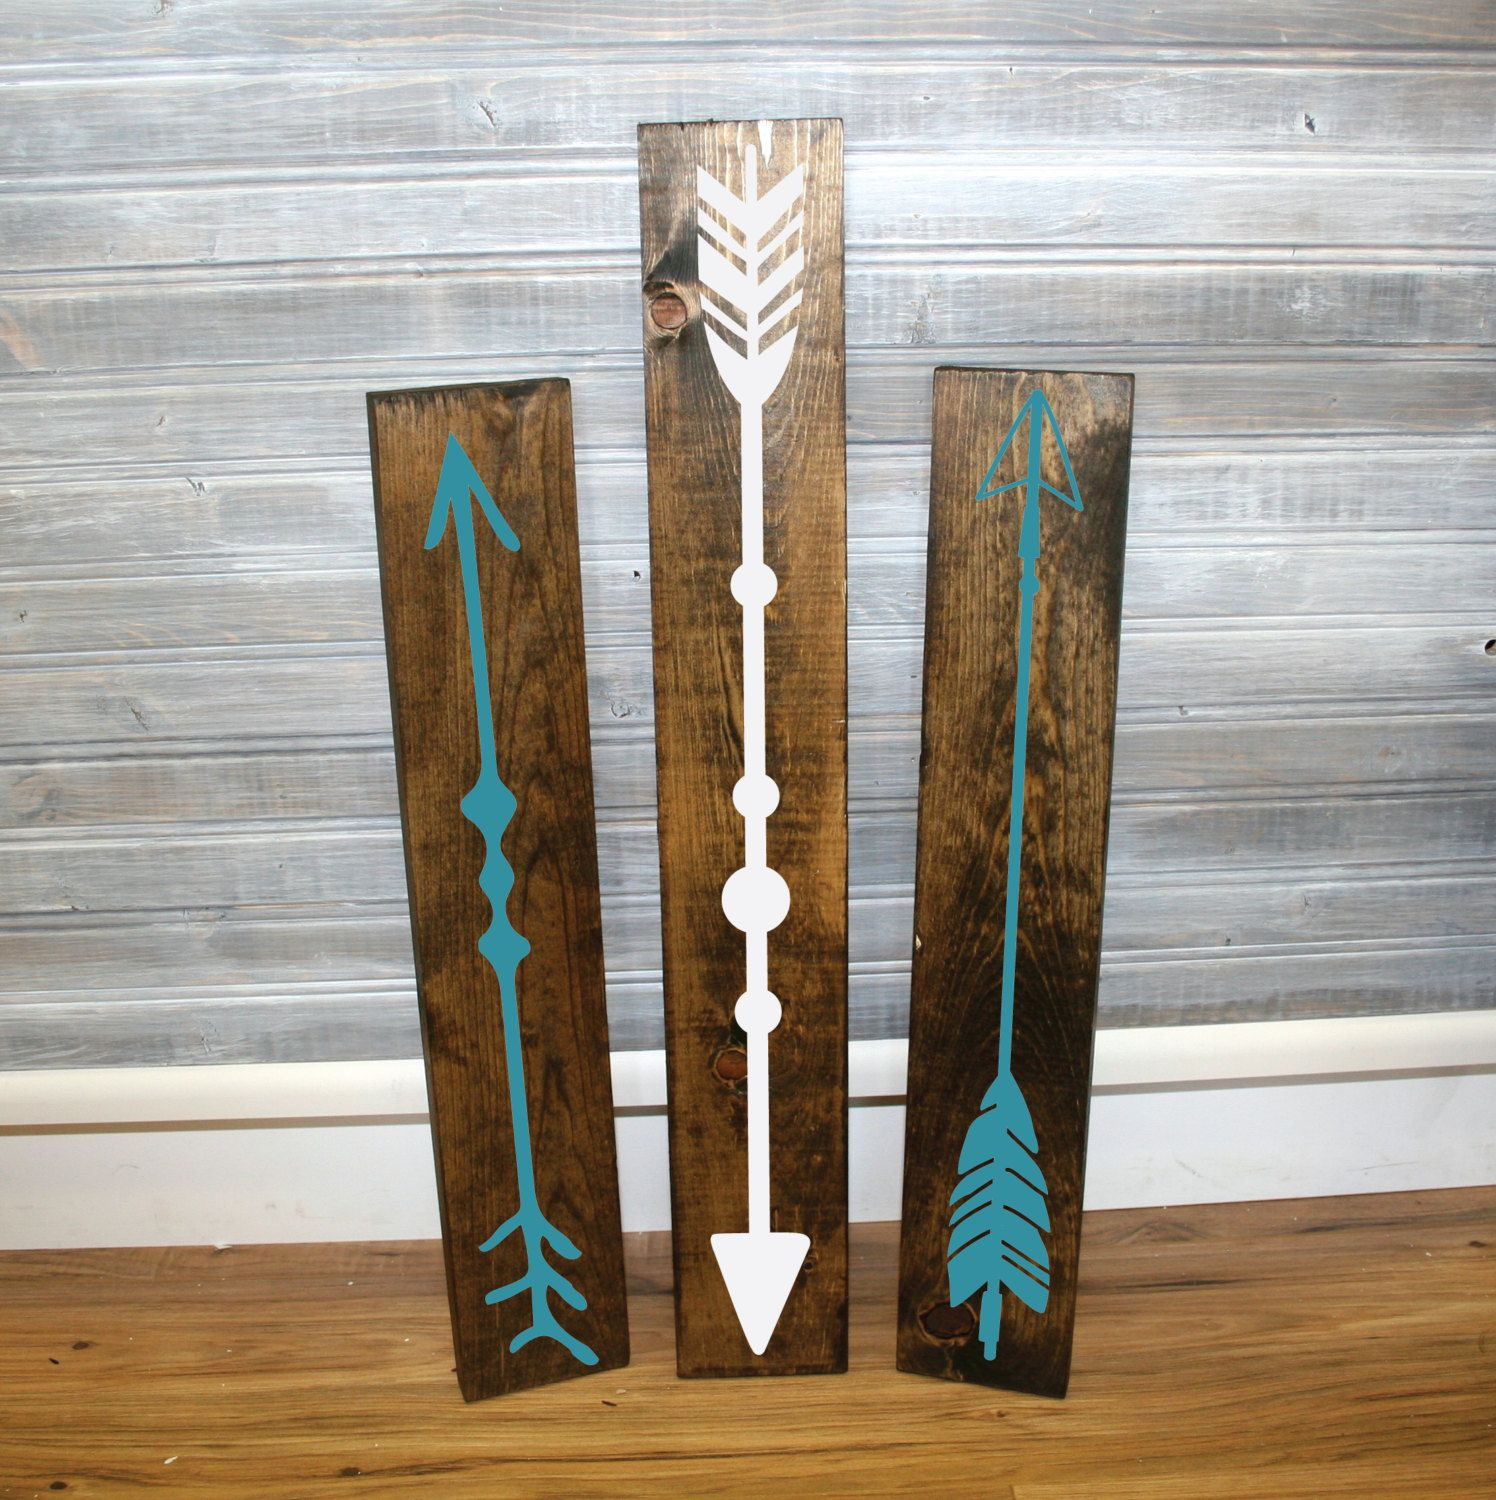 reclaimed wood arrow sigs set of 3 wall decor arrow design wood home decor gift for her aztec bedroom wood tribal sign - Home Decor Gifts